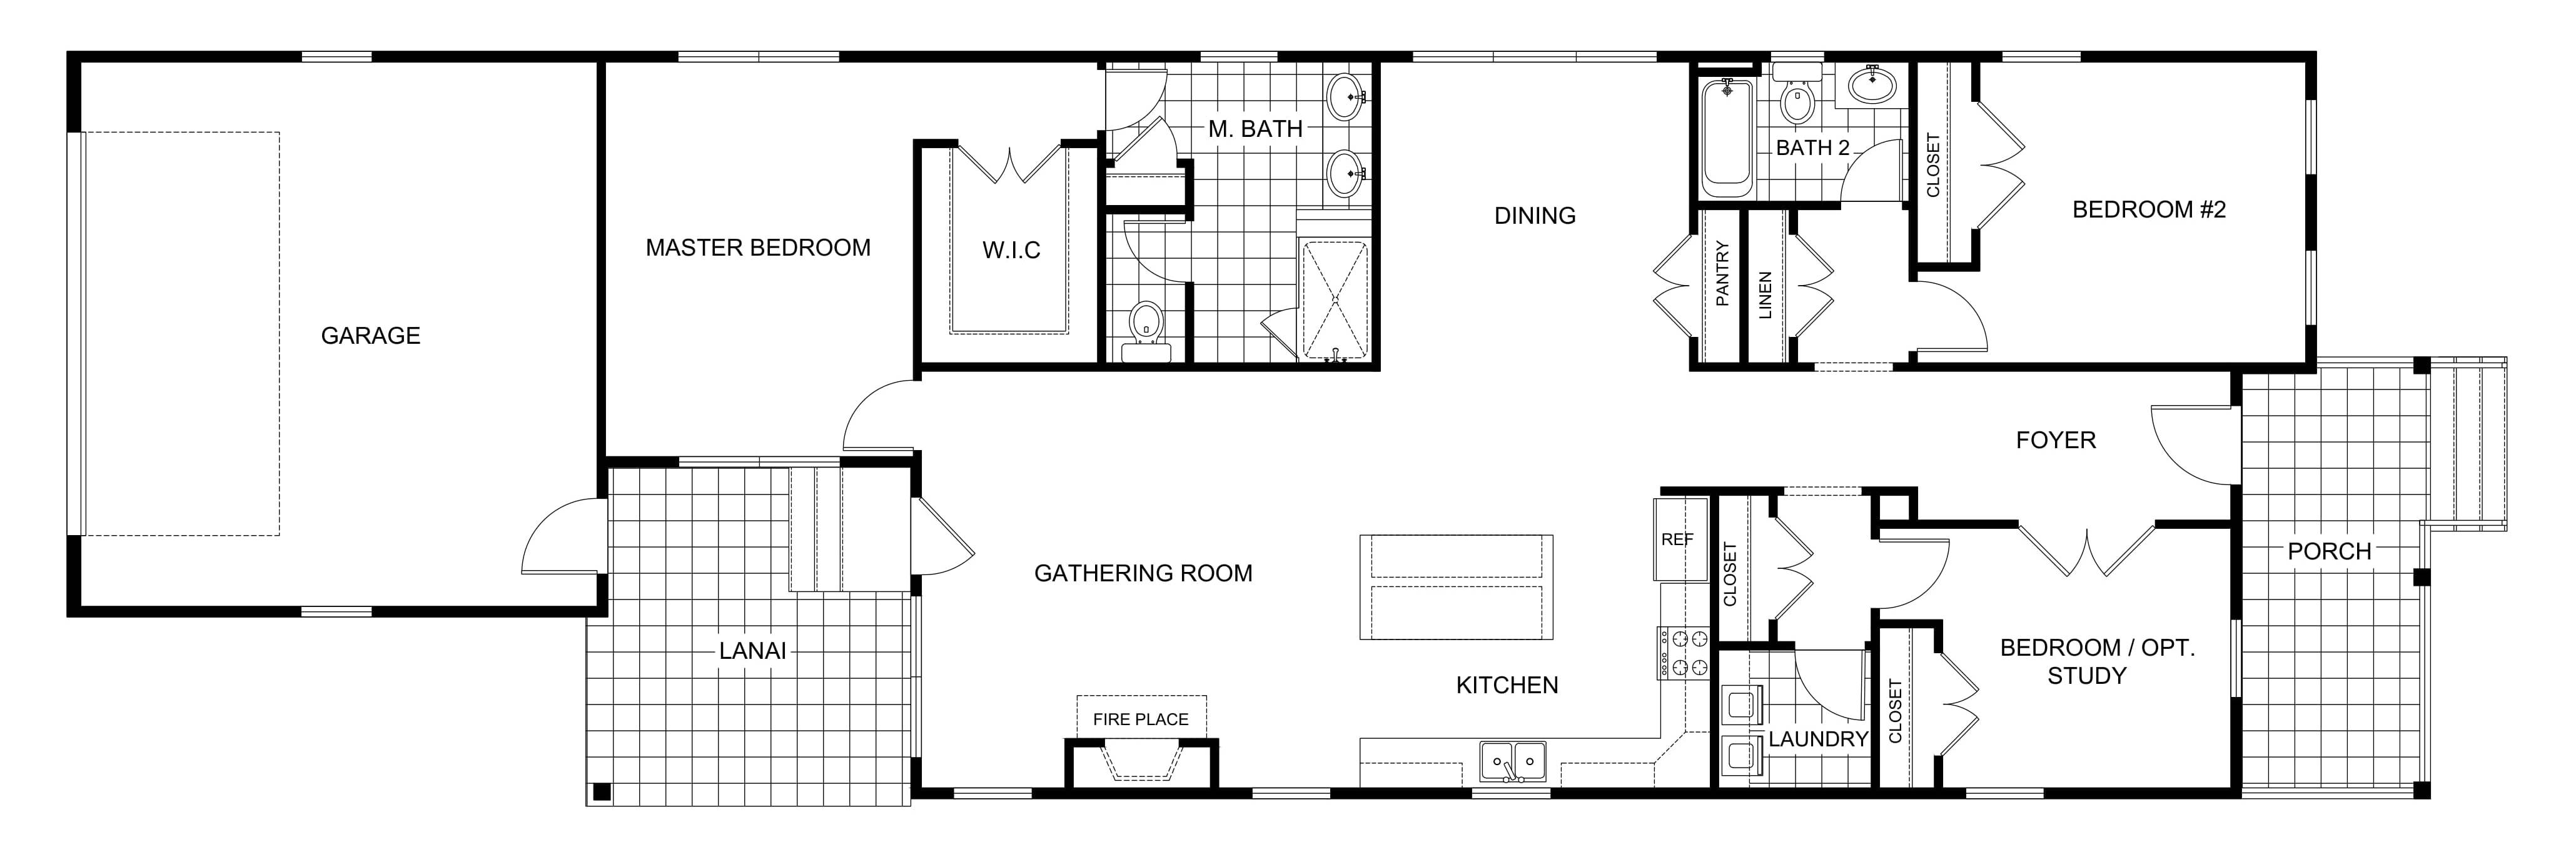 Create 2D Floor Plan Sample